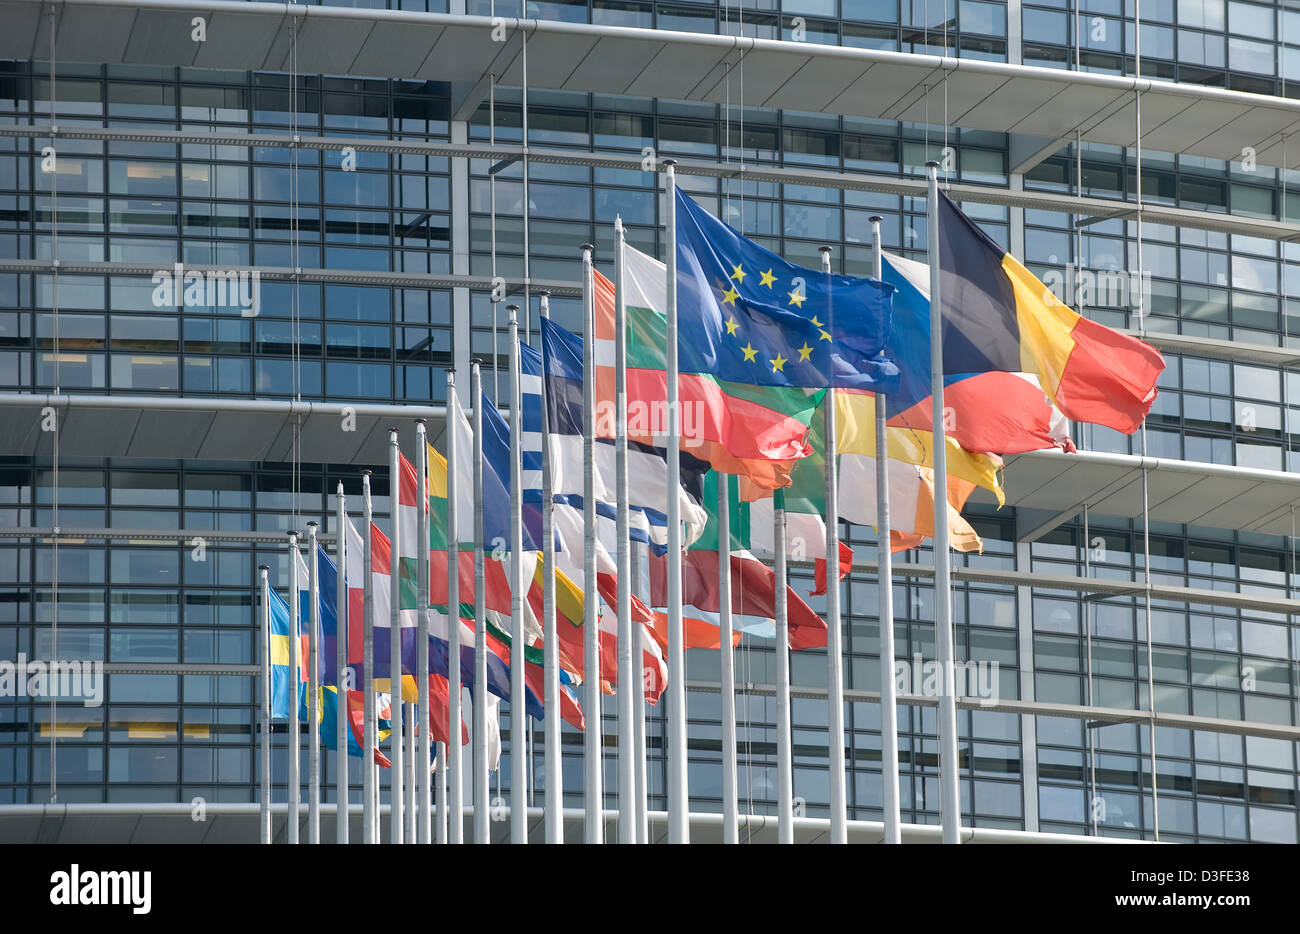 Strasbourg, France, flags of the EU Member States before the European Parliament - Stock Image